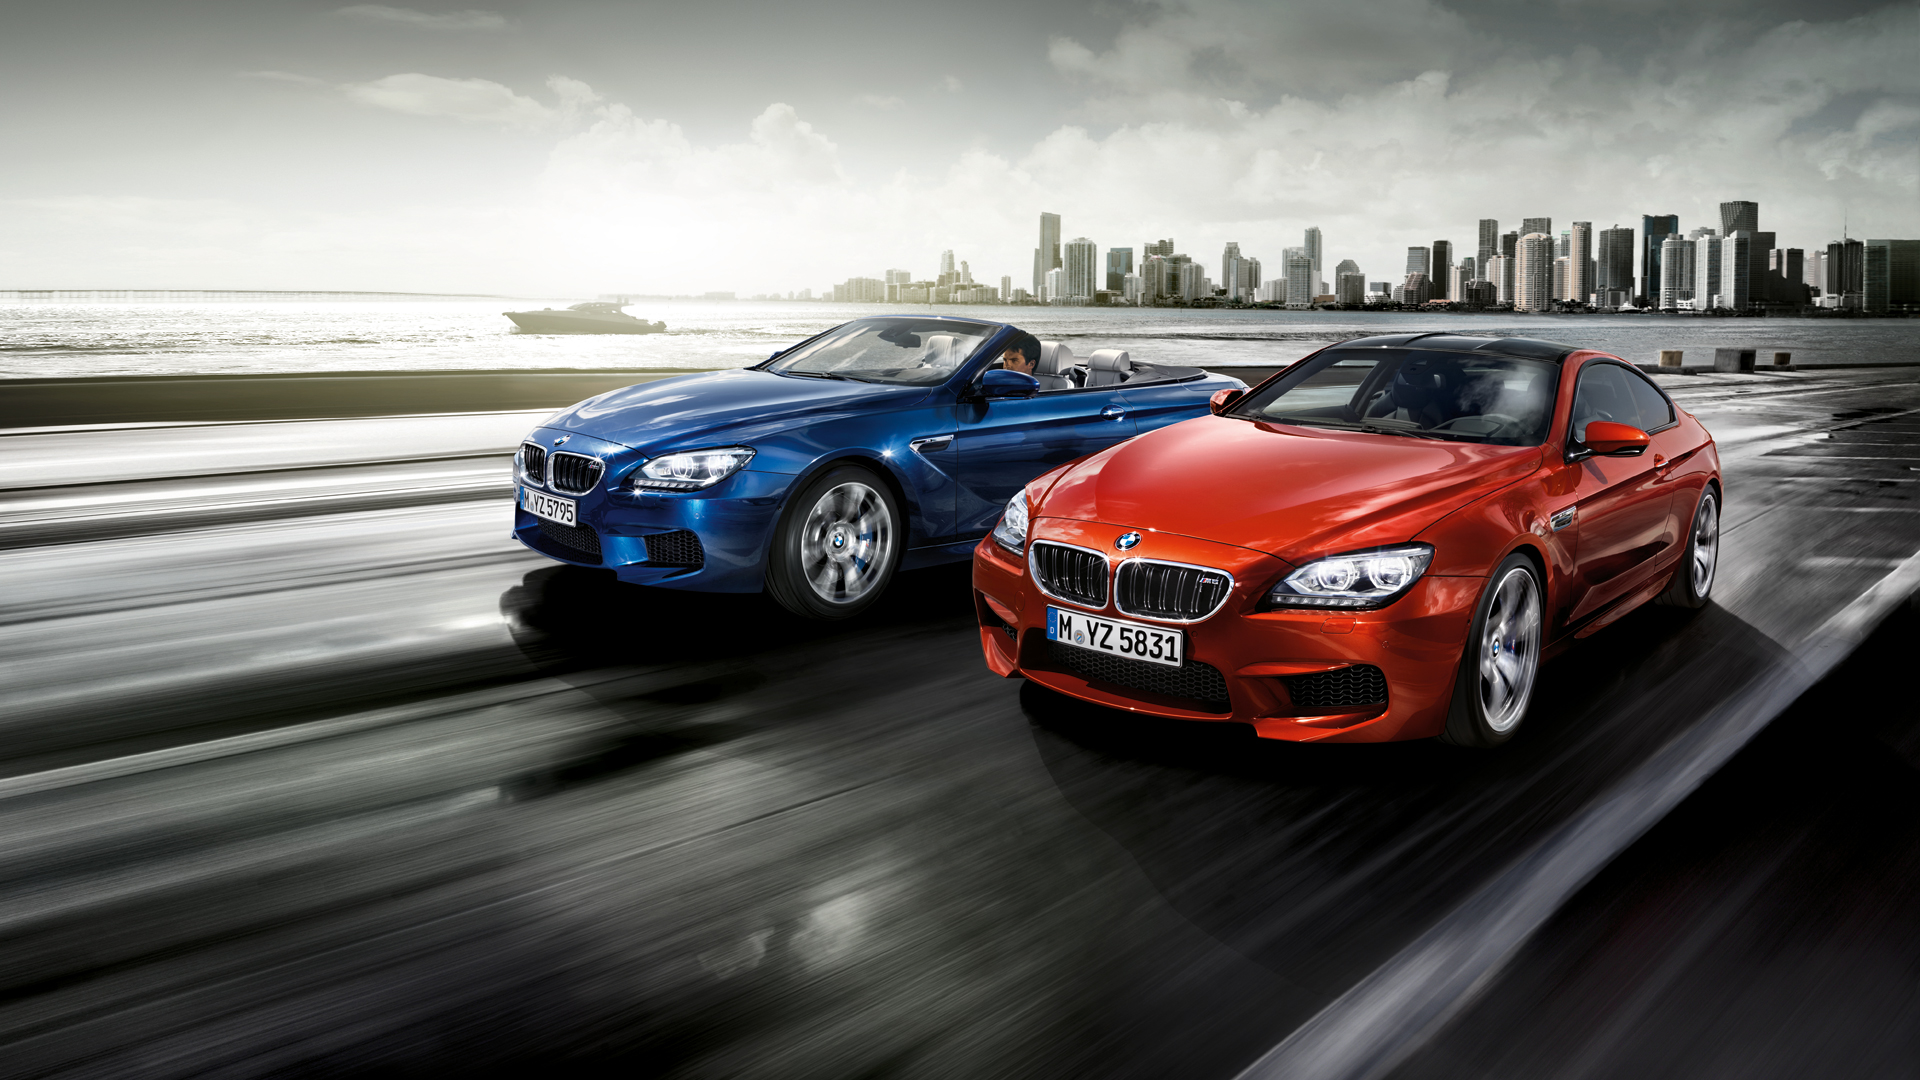 Cars Wallpapers: Bmw M6 Wallpapers High Quality